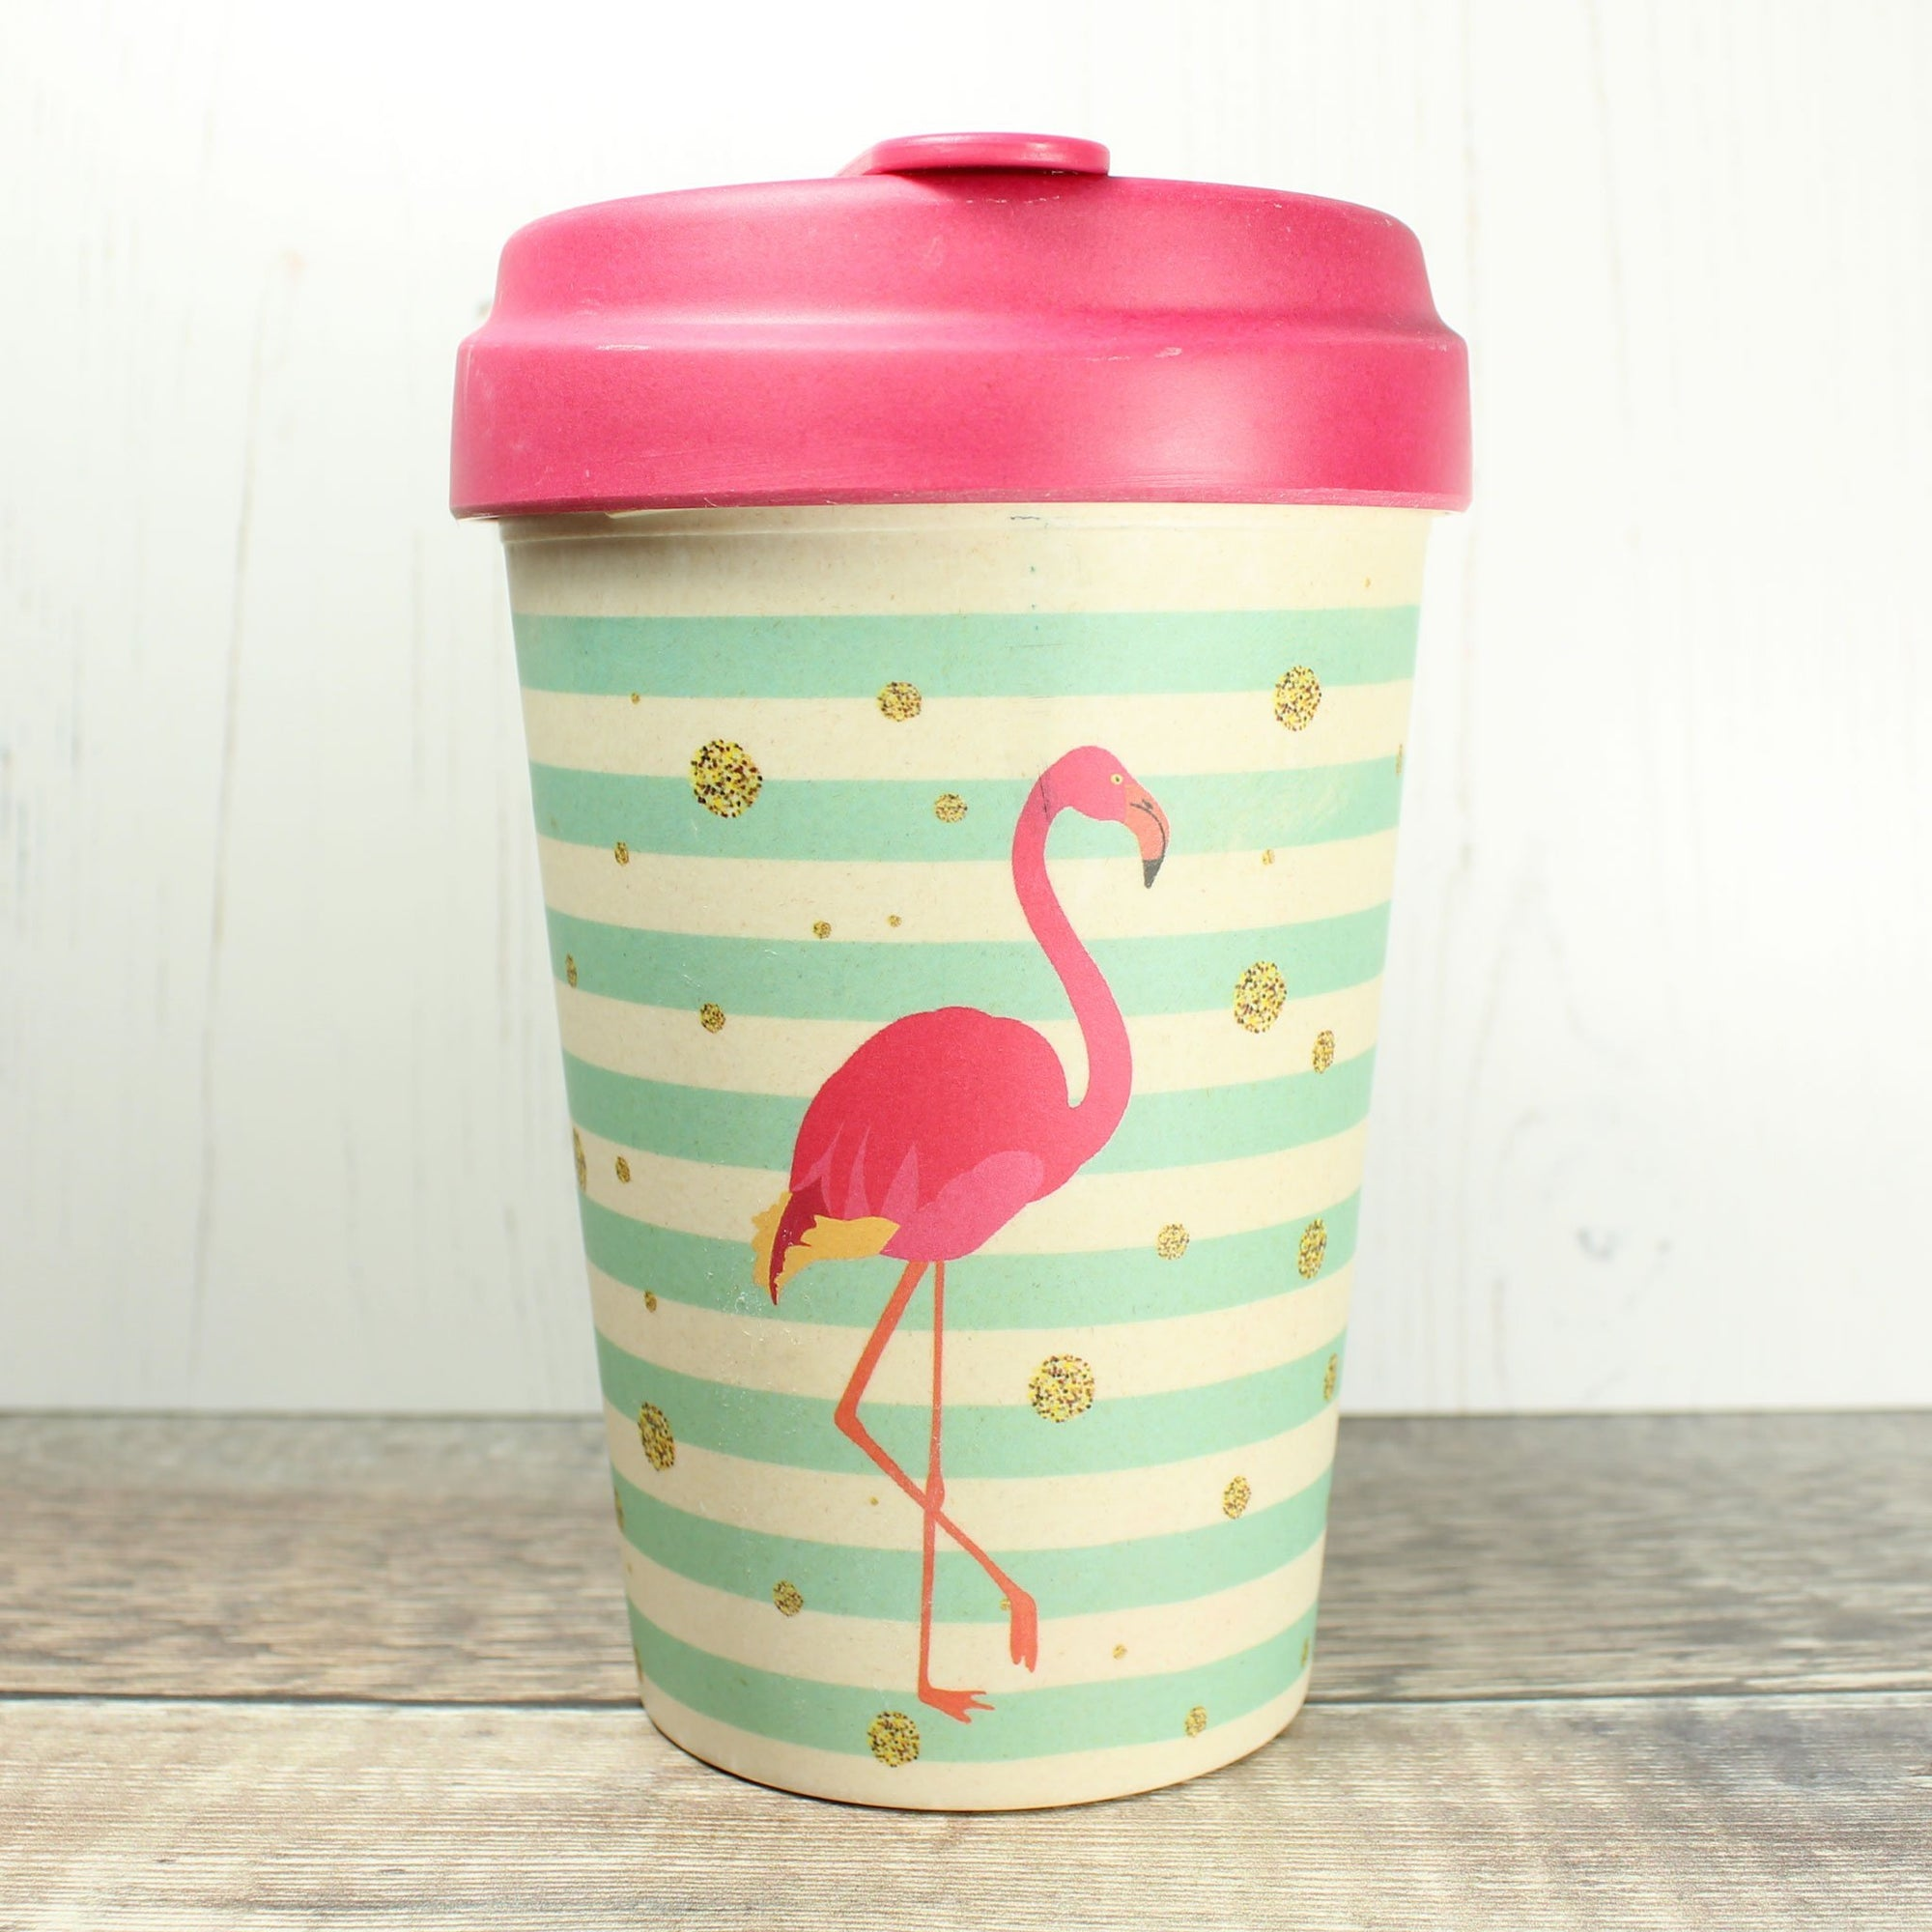 Bamboo Cup - Flamingo | Bamboo Cup - The Naughty Shrew